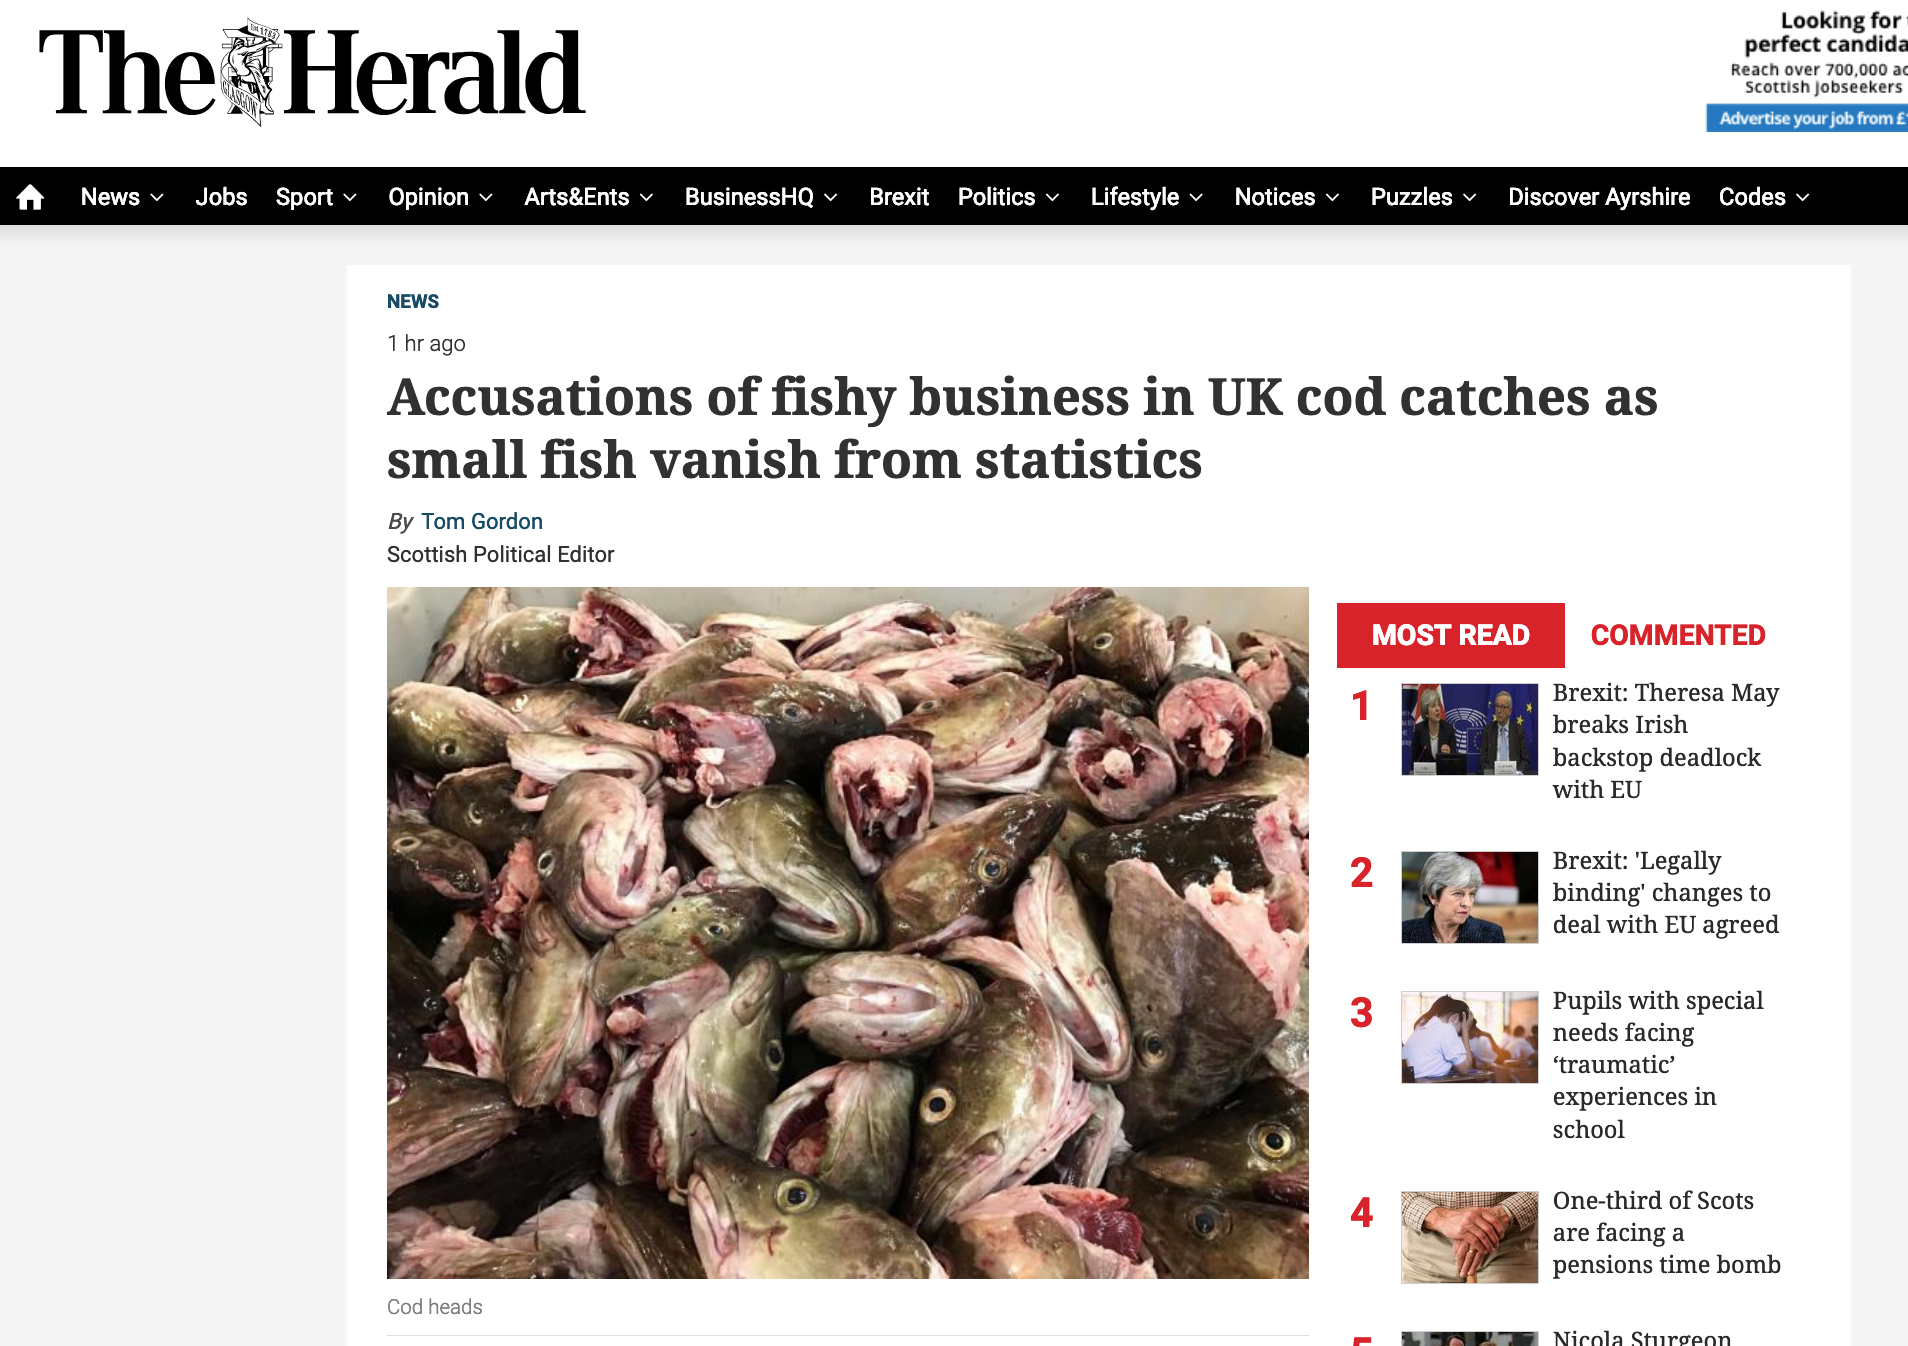 Accusations of fishy business in UK cod catches as small fish vanish from statistics